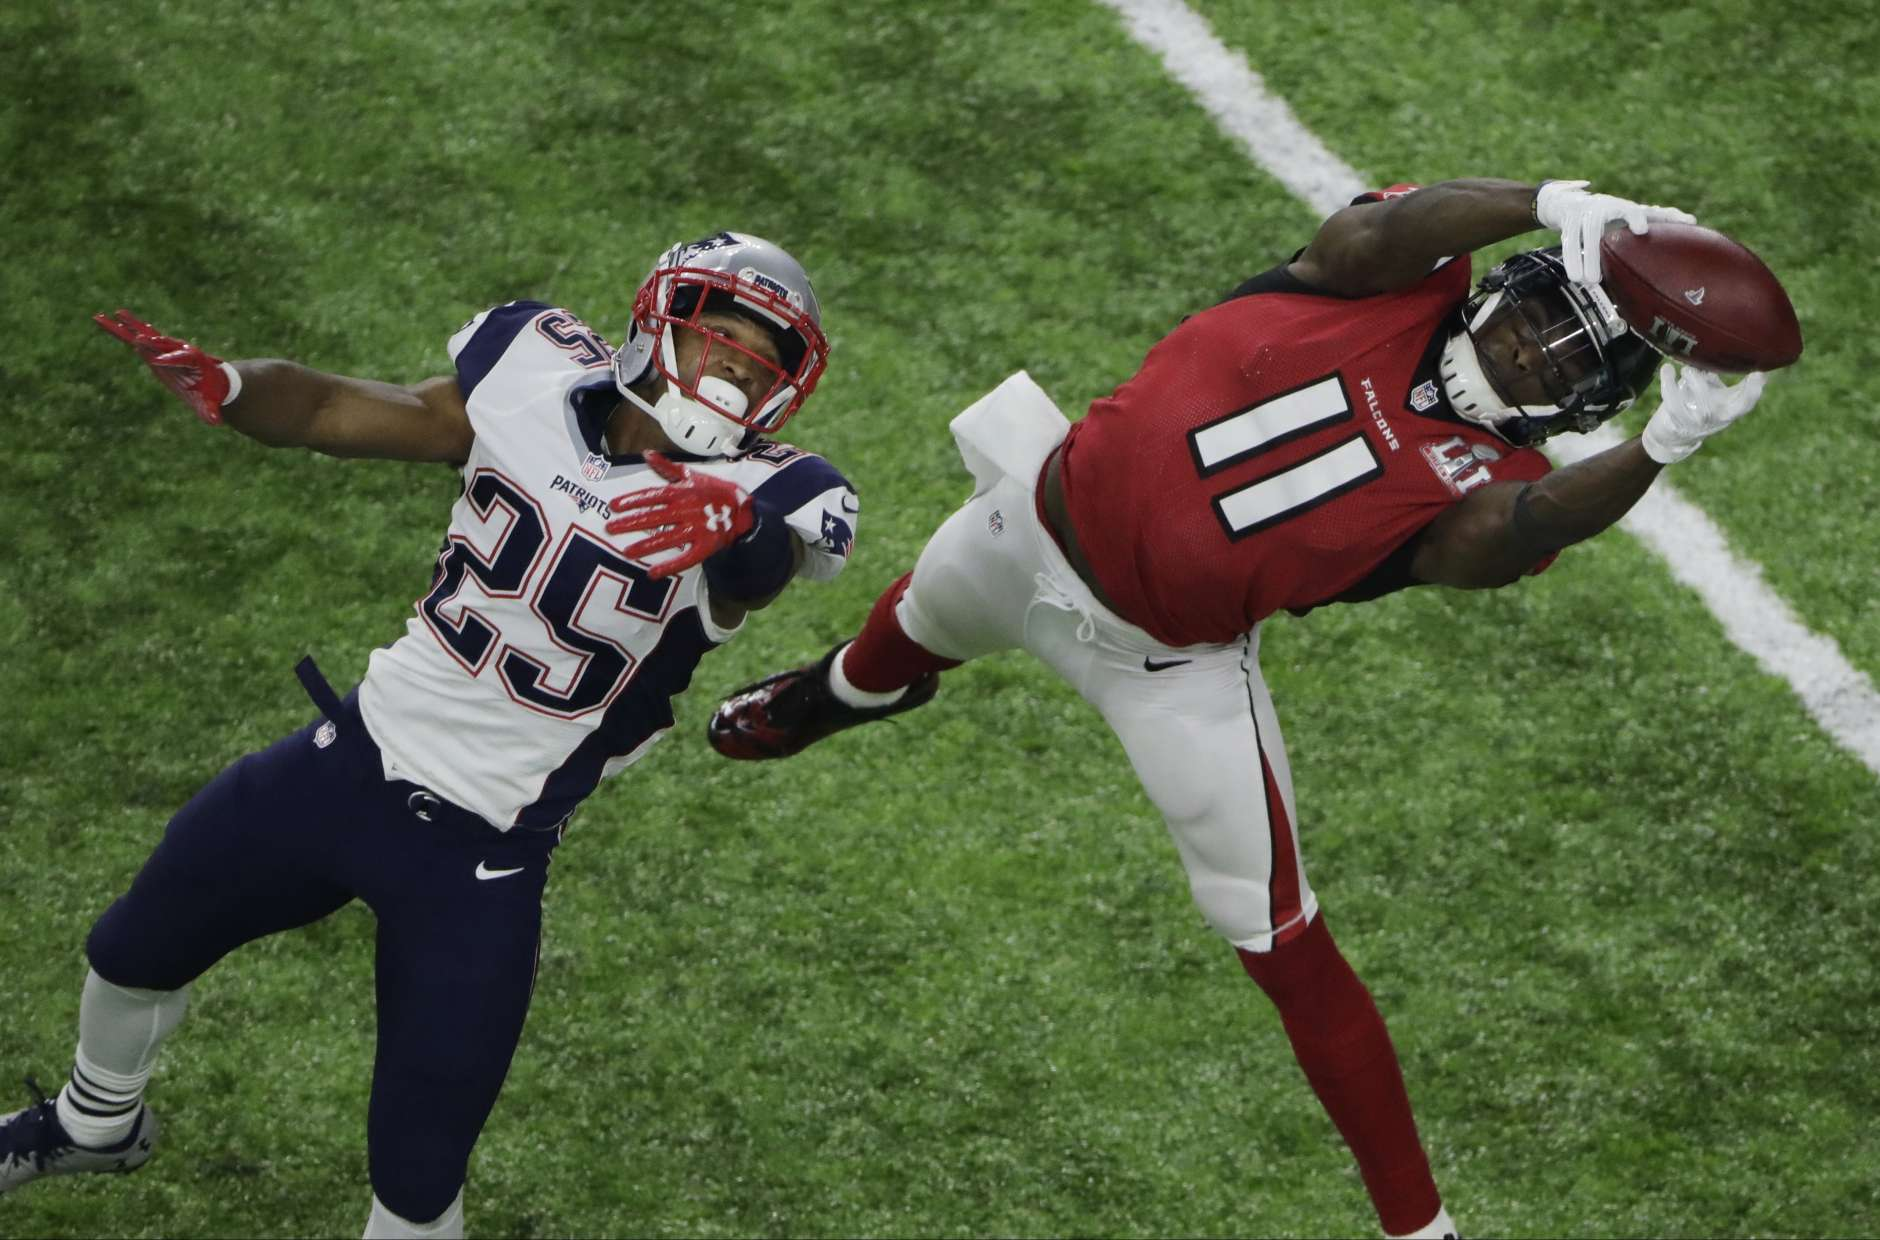 Atlanta Falcons' Julio Jones (11) makes a catch against New England Patriots' Eric Rowe (25) during the second half of the NFL Super Bowl 51 football game Sunday, Feb. 5, 2017, in Houston. (AP Photo/Charlie Riedel)